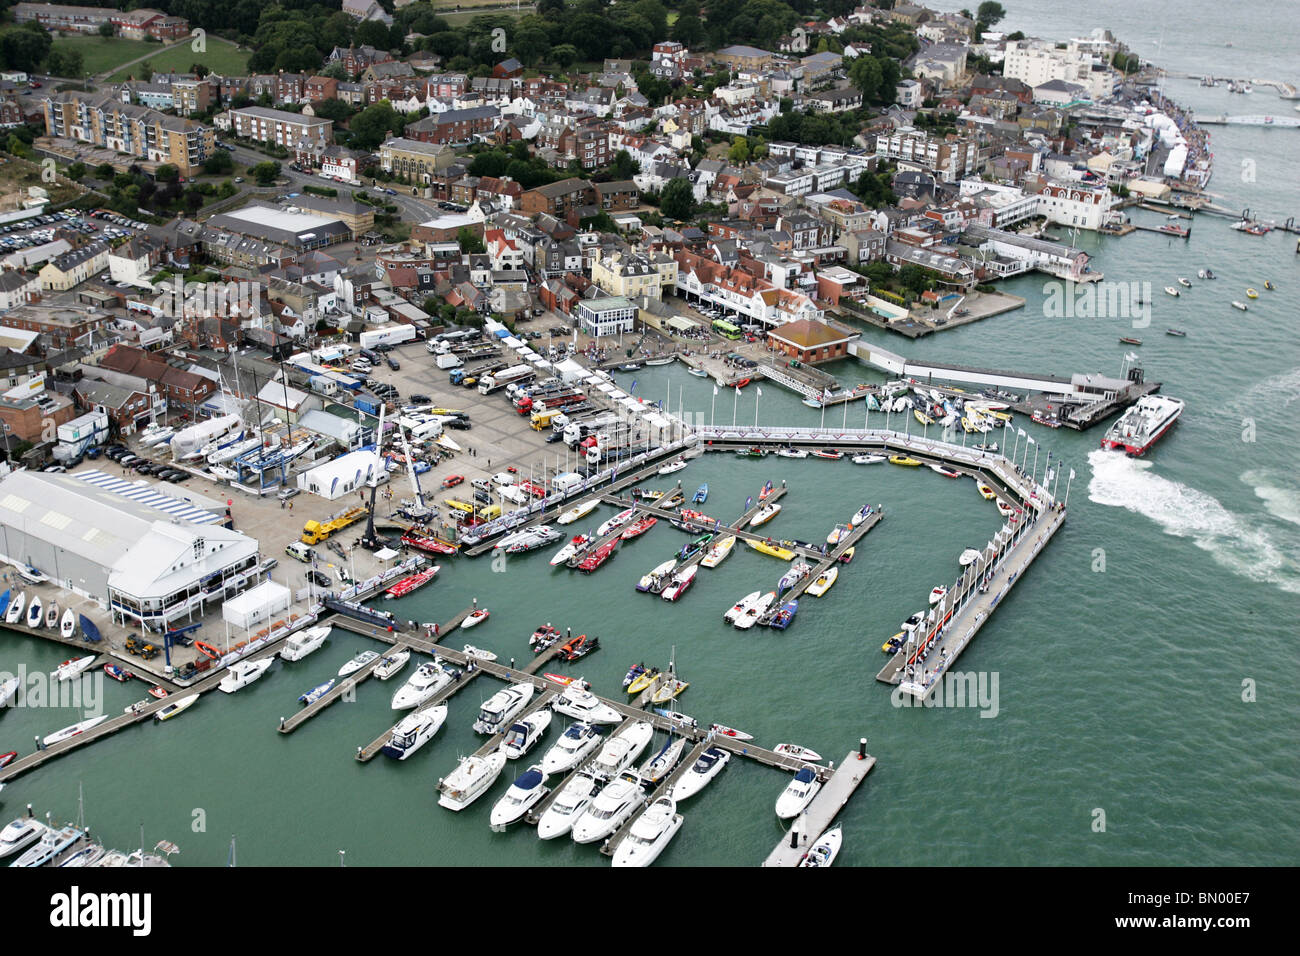 Powerboat P1 Festival Cowes, Isle of Wight. - Stock Image